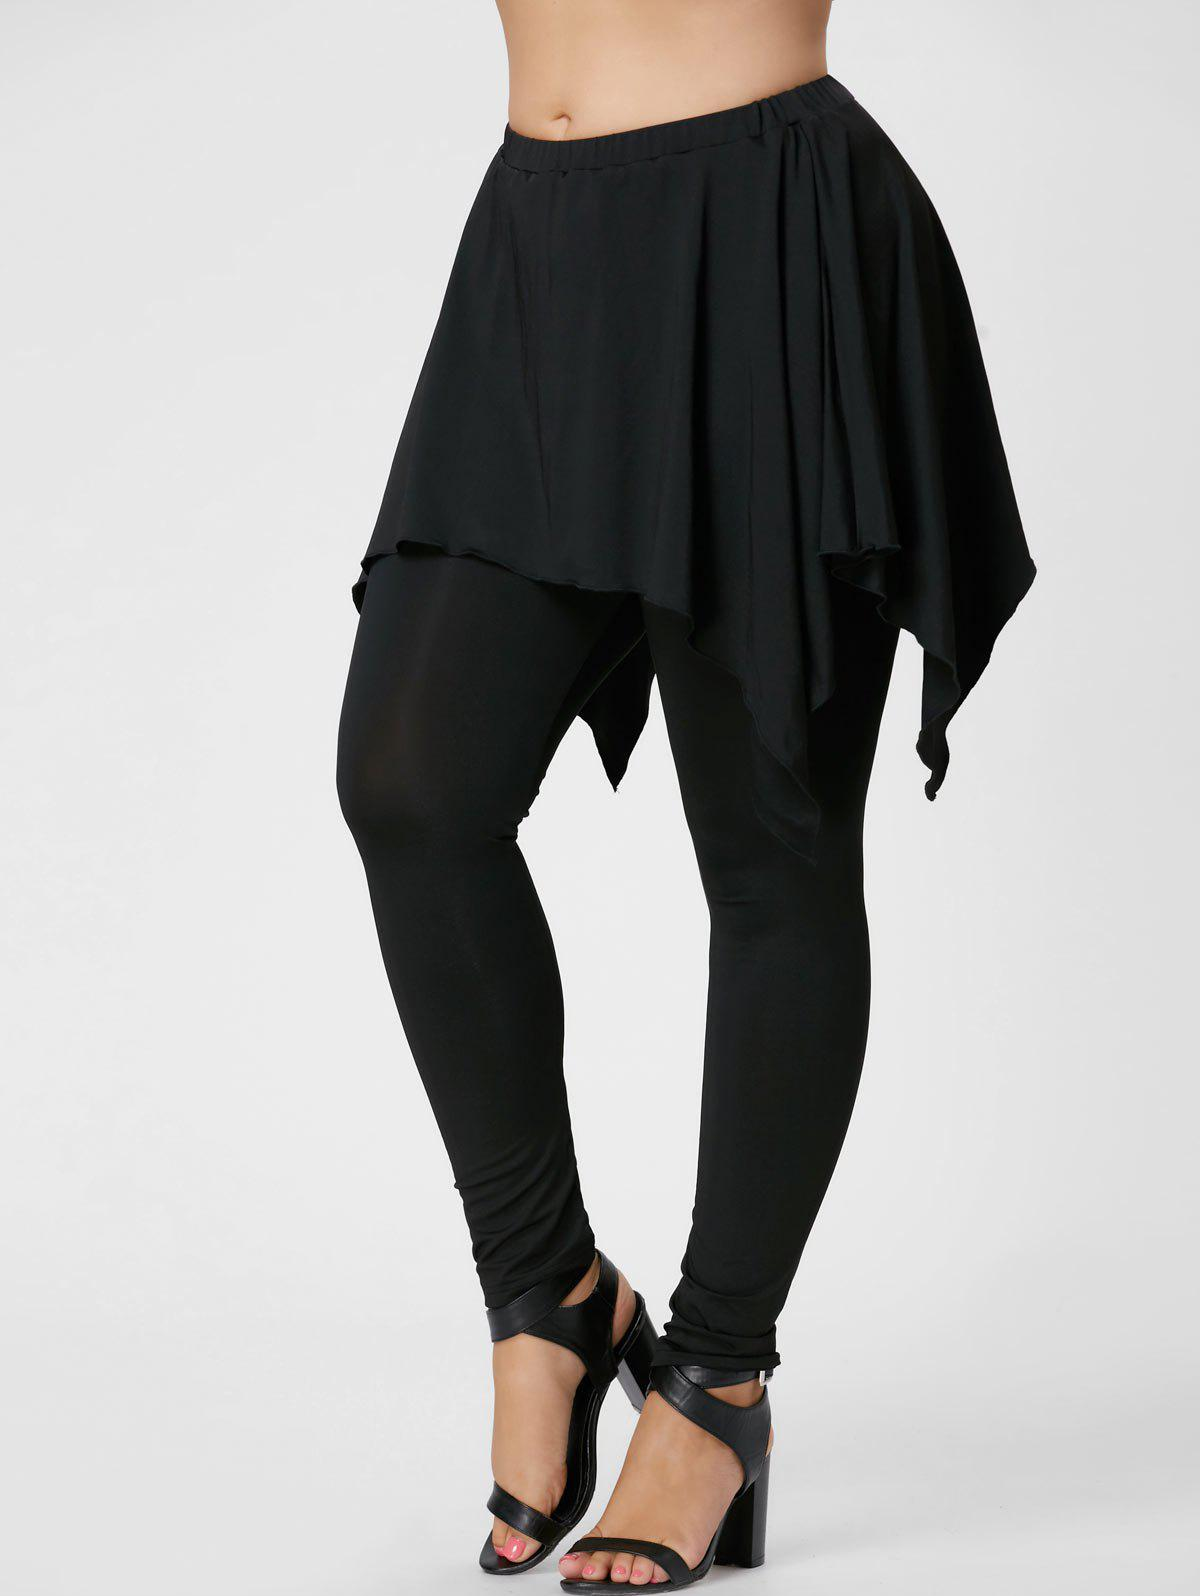 Plus Size Handerchief Skirt LenggingsWOMEN<br><br>Size: 3XL; Color: BLACK; Style: Active; Length: Normal; Material: Polyester,Spandex; Fit Type: Skinny; Waist Type: Mid; Closure Type: Elastic Waist; Pattern Type: Solid; Pant Style: Pencil Pants; Weight: 0.3600kg; Package Contents: 1 x Pants;